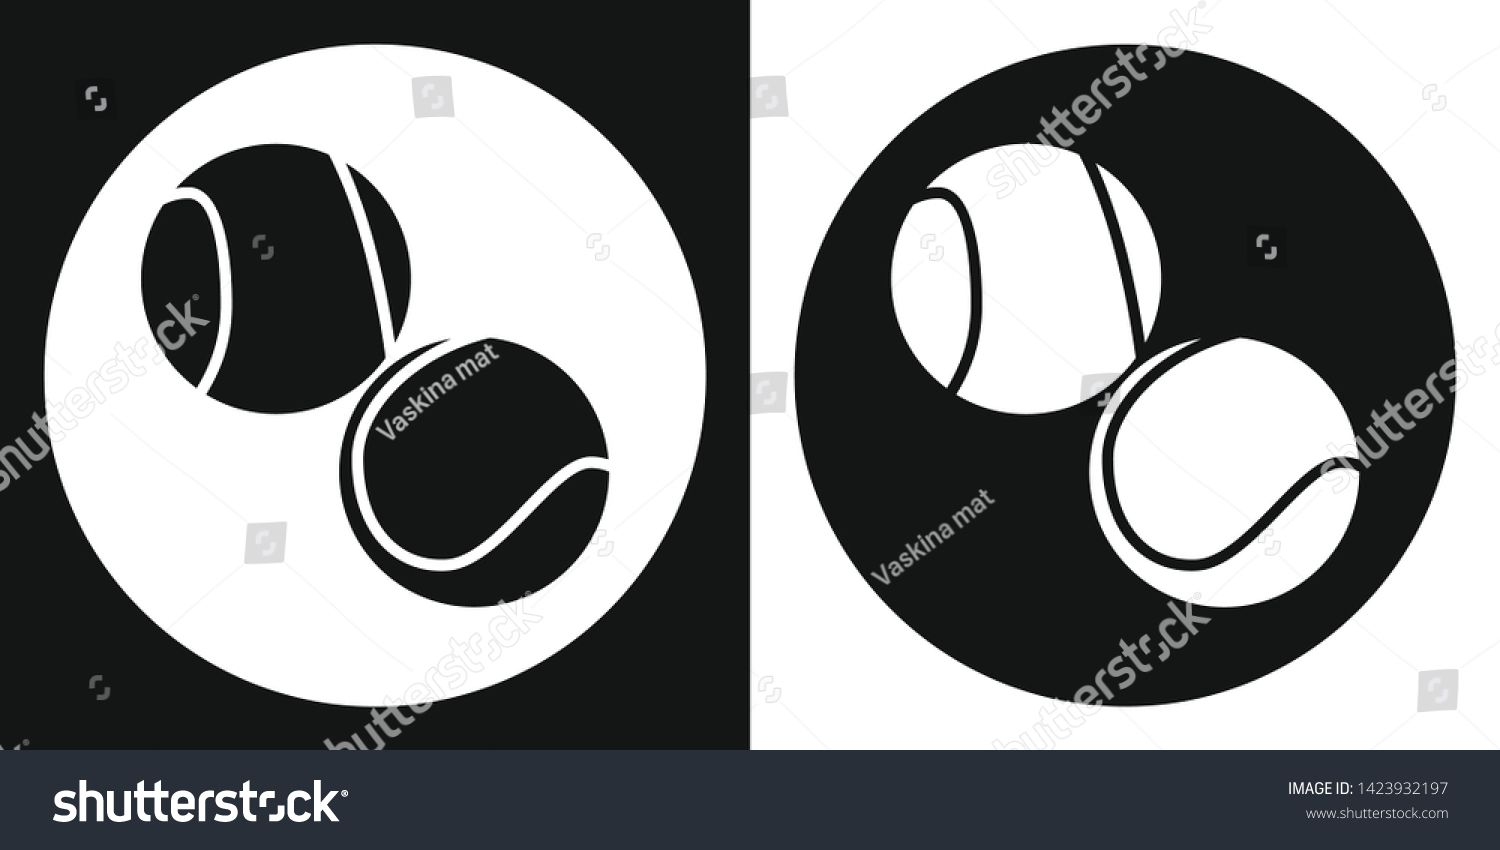 Tennis Ball Icon Silhouette Tennis Ball On A Black And White Background Sports Equipment Illustra Black And White Background Stock Illustration Illustration